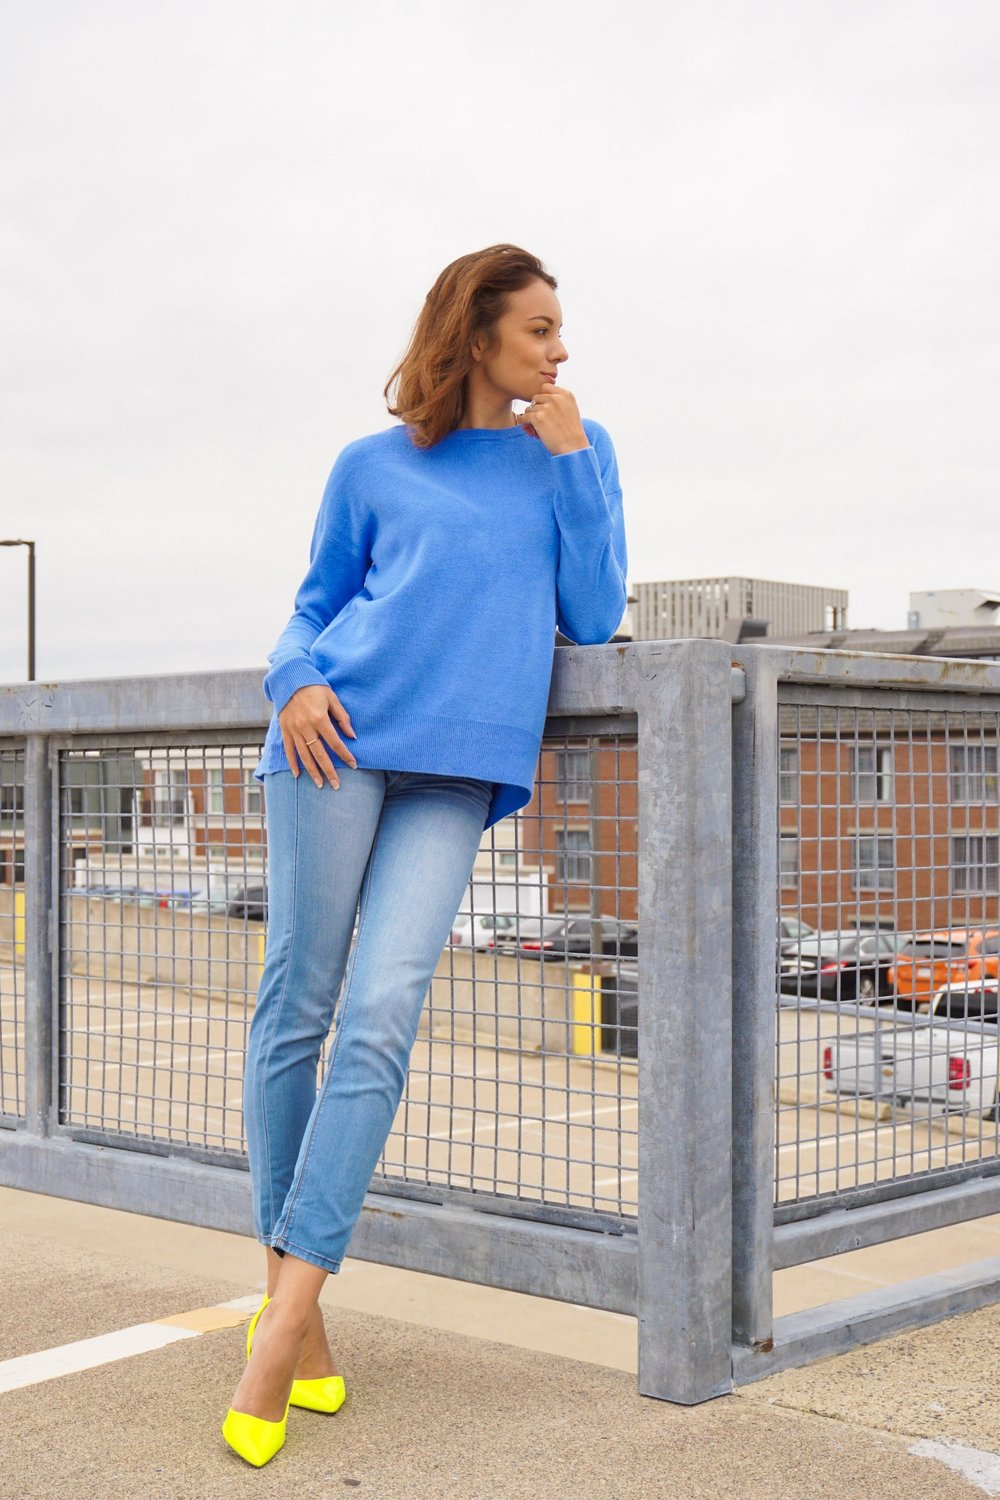 A blogger posing near a fence, wearing a baby blue color sweater, light blue jeans, and neon heels.